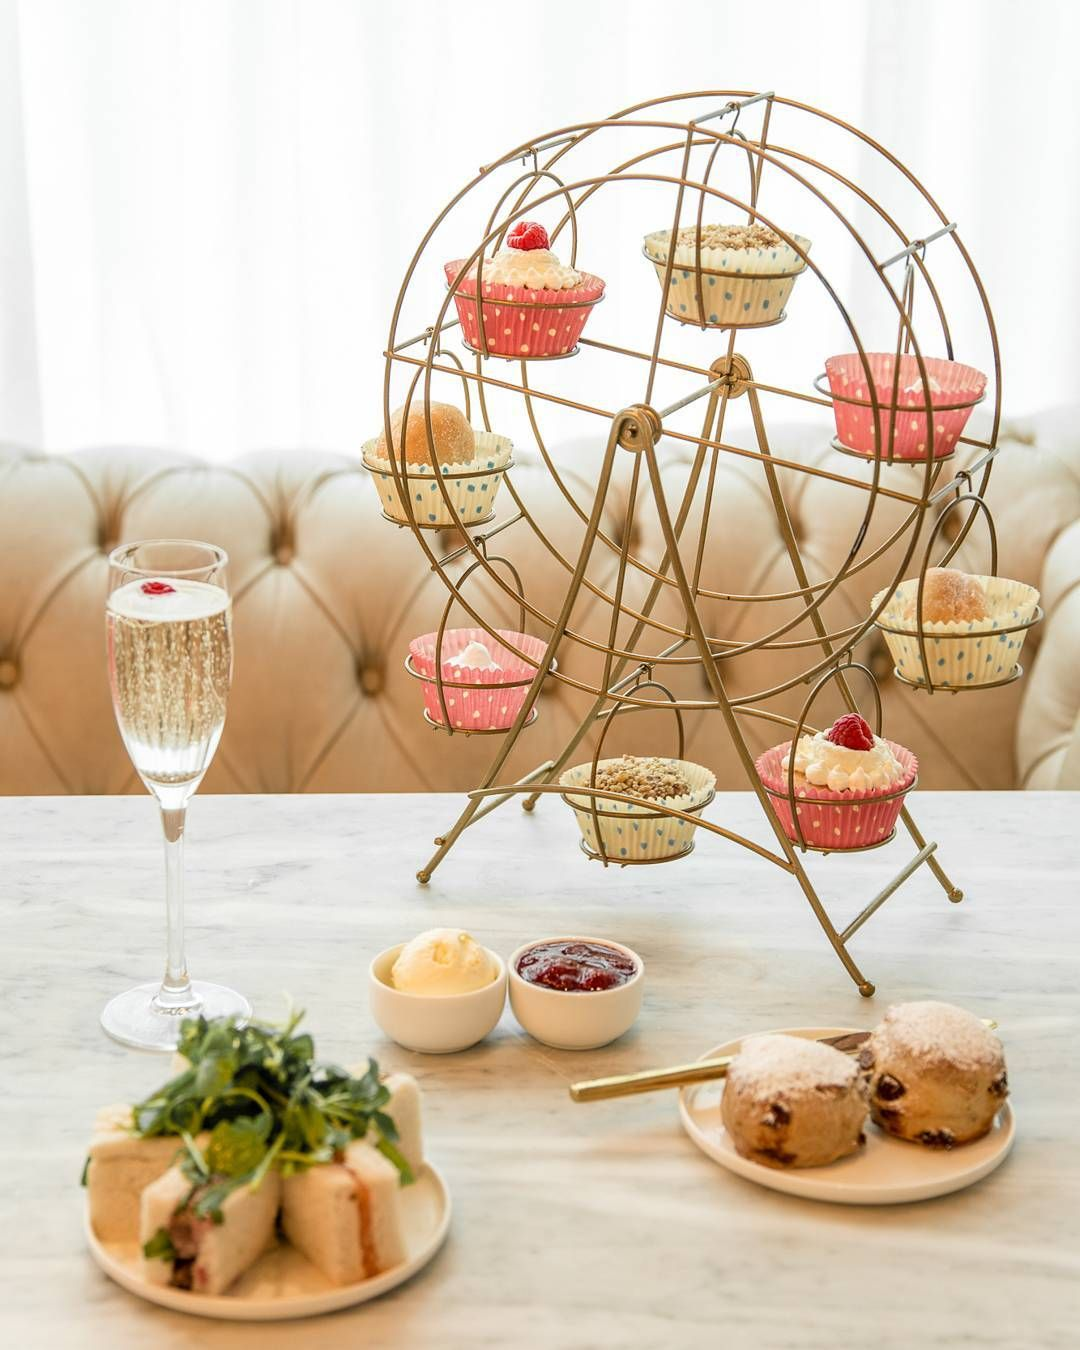 Pin by Lucie Kinsella on Food Concepts Afternoon tea